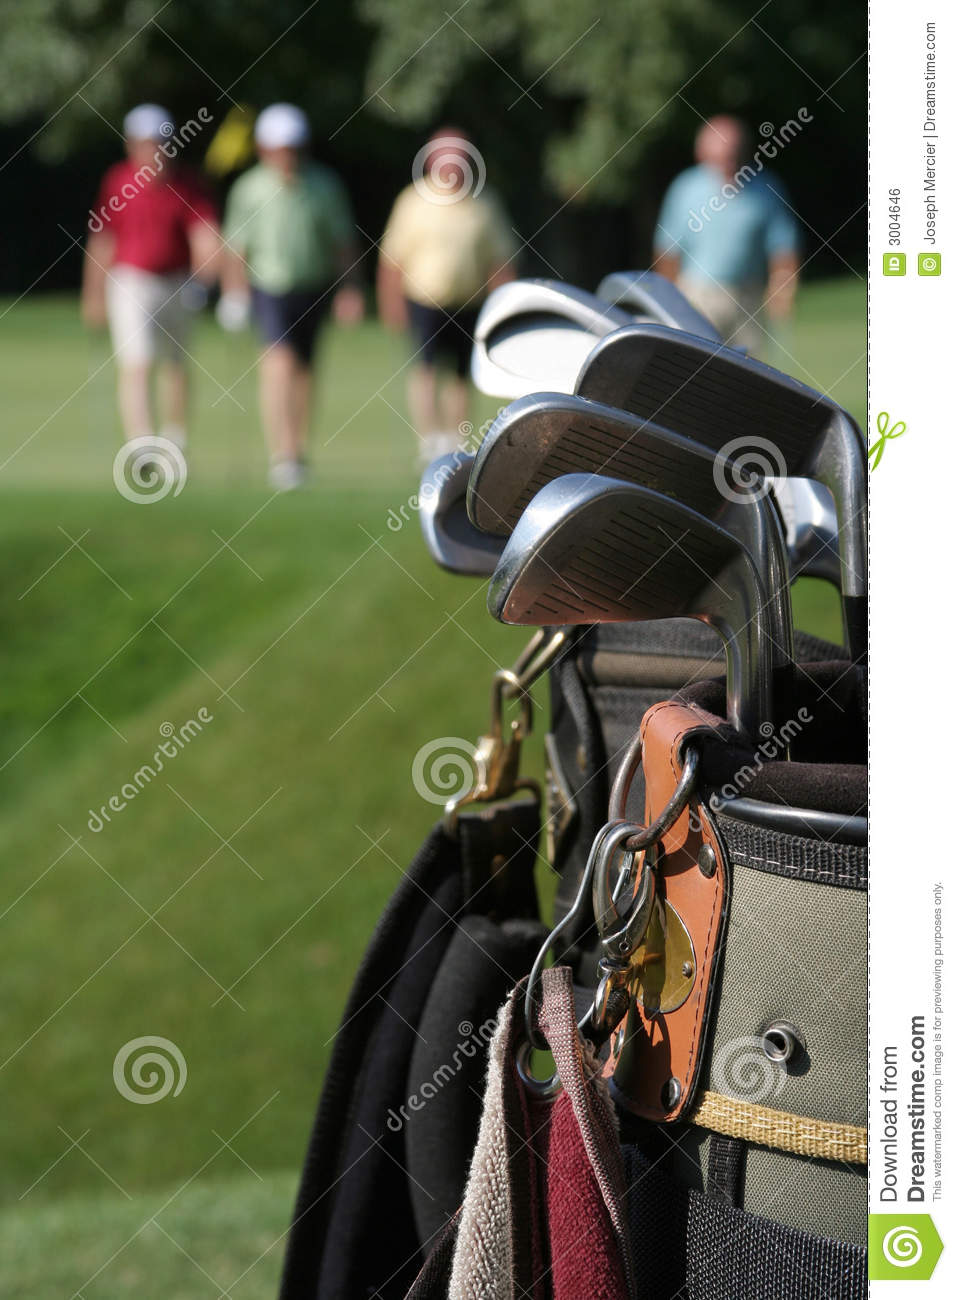 Returning Golfers and Golfbag